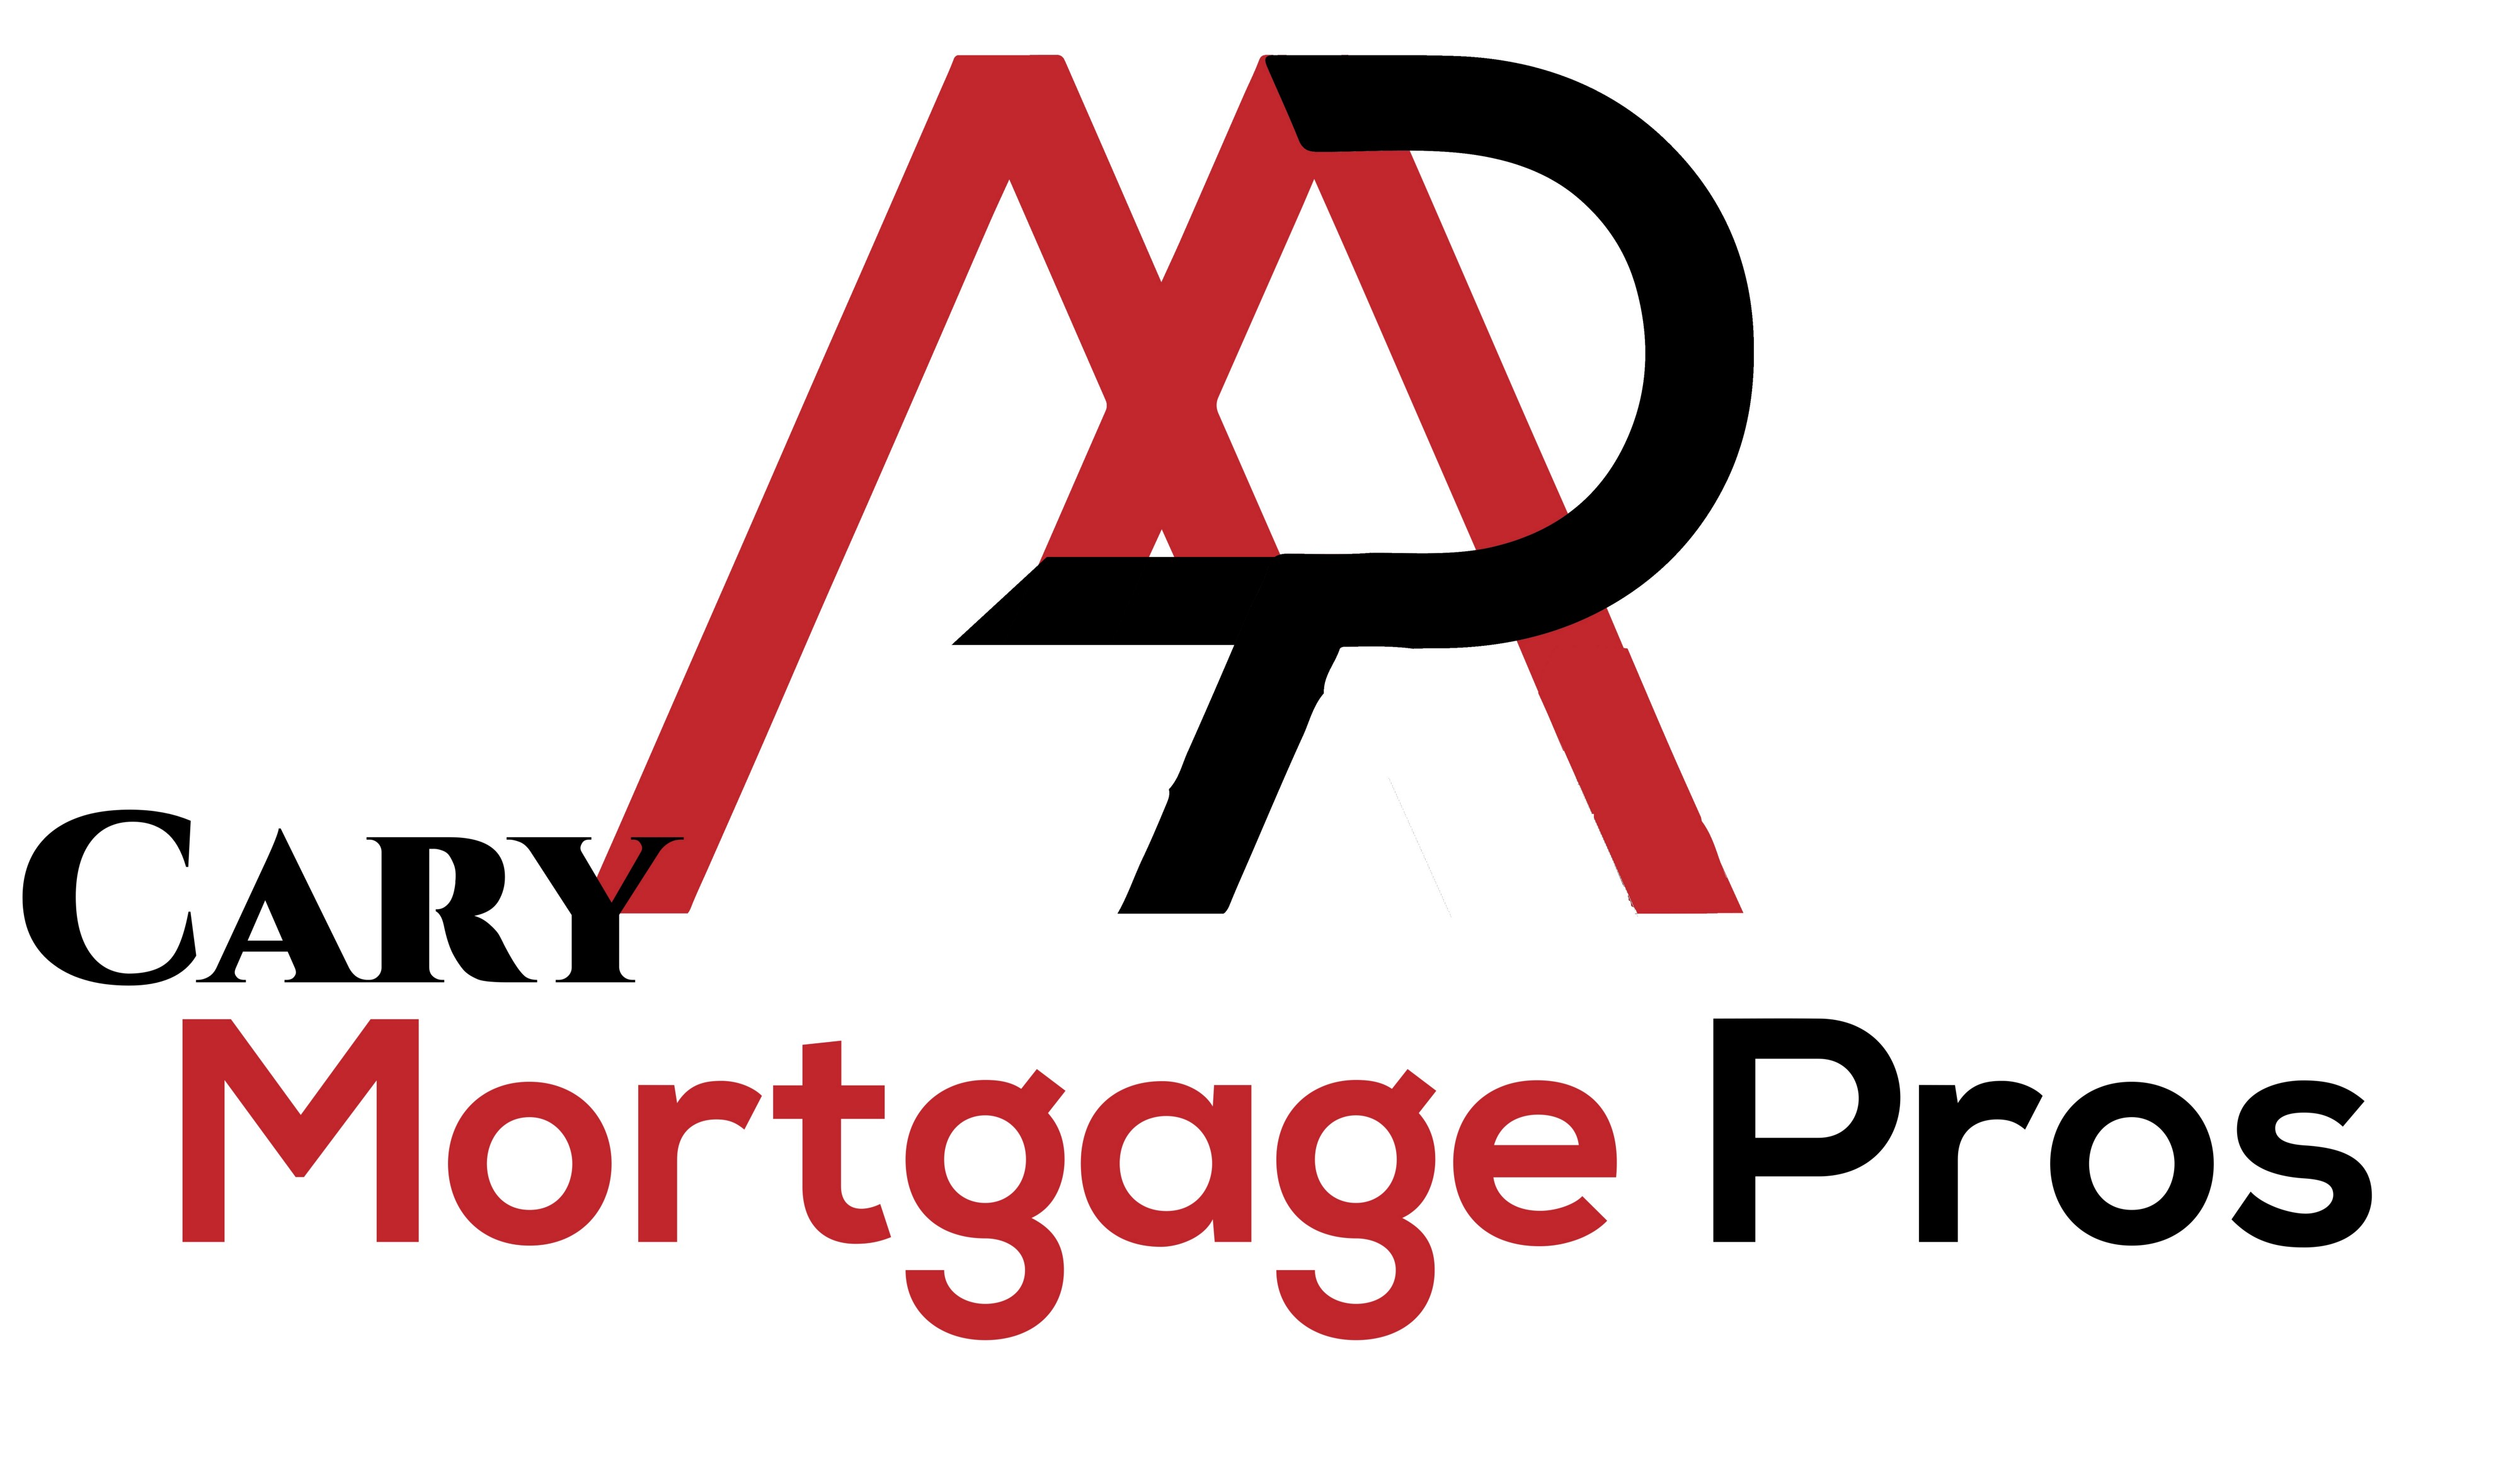 What Is The Minimum Credit Score For A Conventional Mortgage Loan Cary Mortgage Pros By Mortgagebroker Pro Localmortgagebrokers Medium